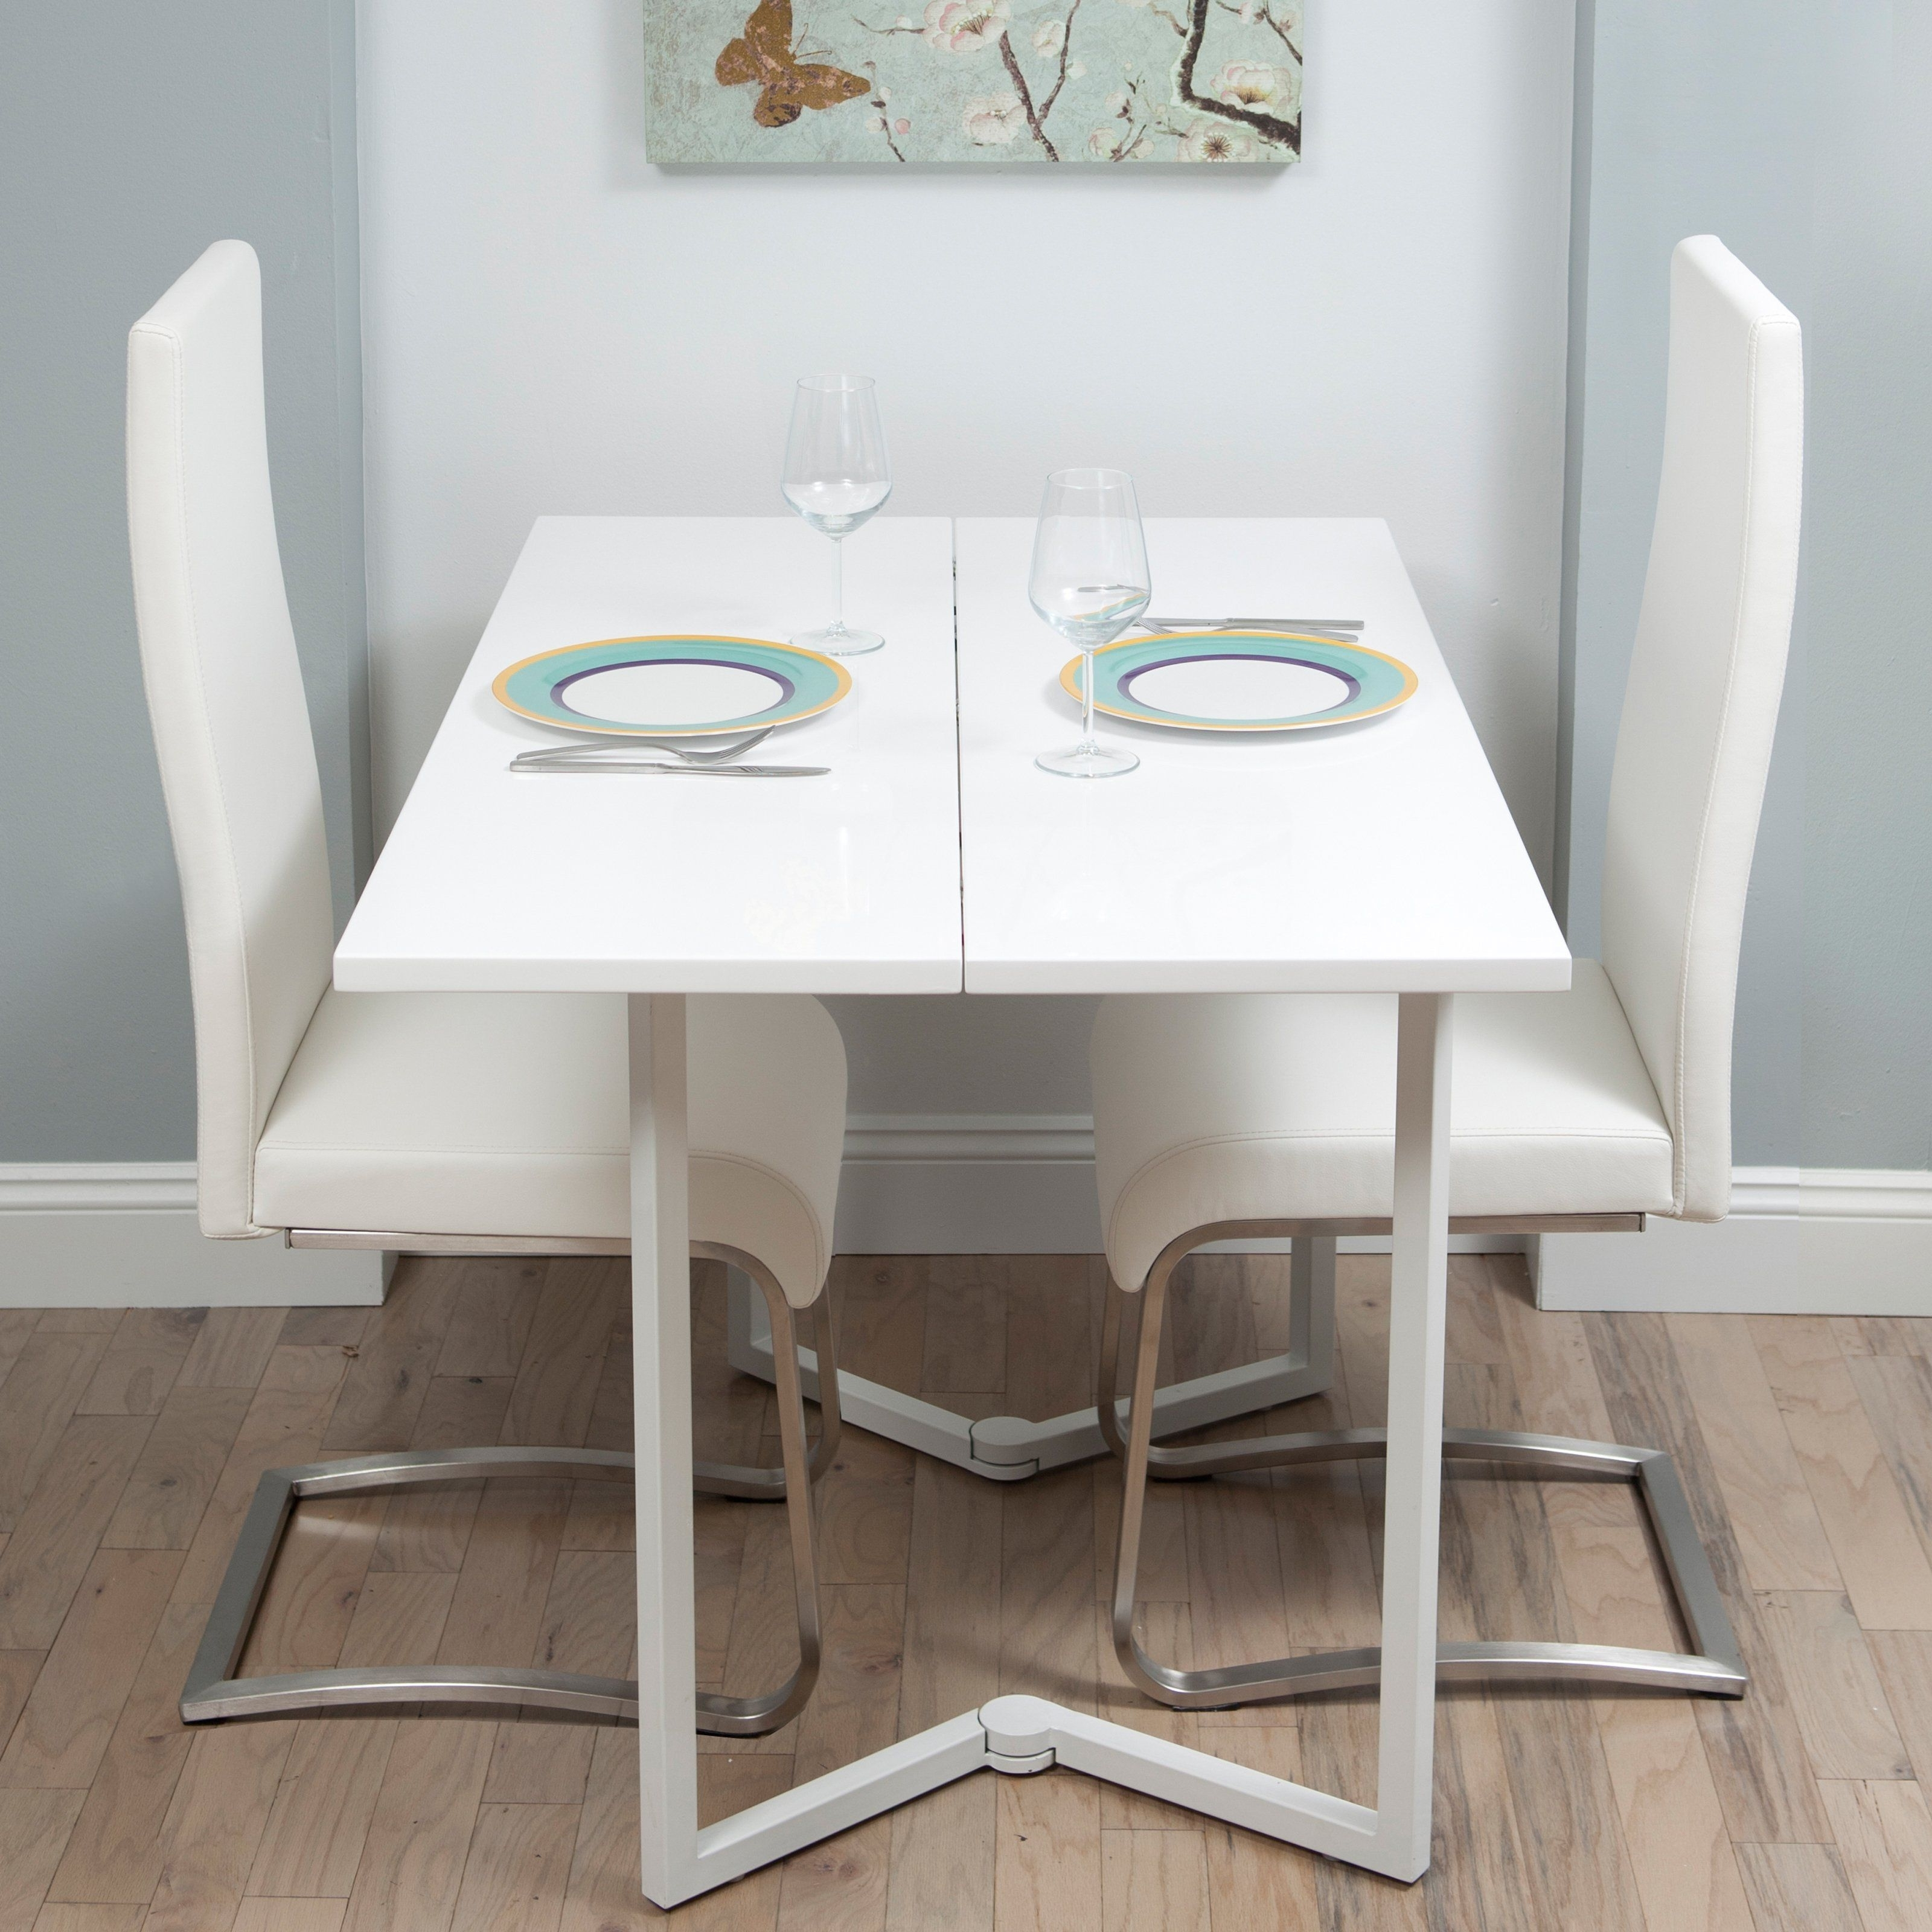 Fascinating Big White Chair Facing Bright Big Folding Dining Table Regarding 2018 Large Folding Dining Tables (View 2 of 25)